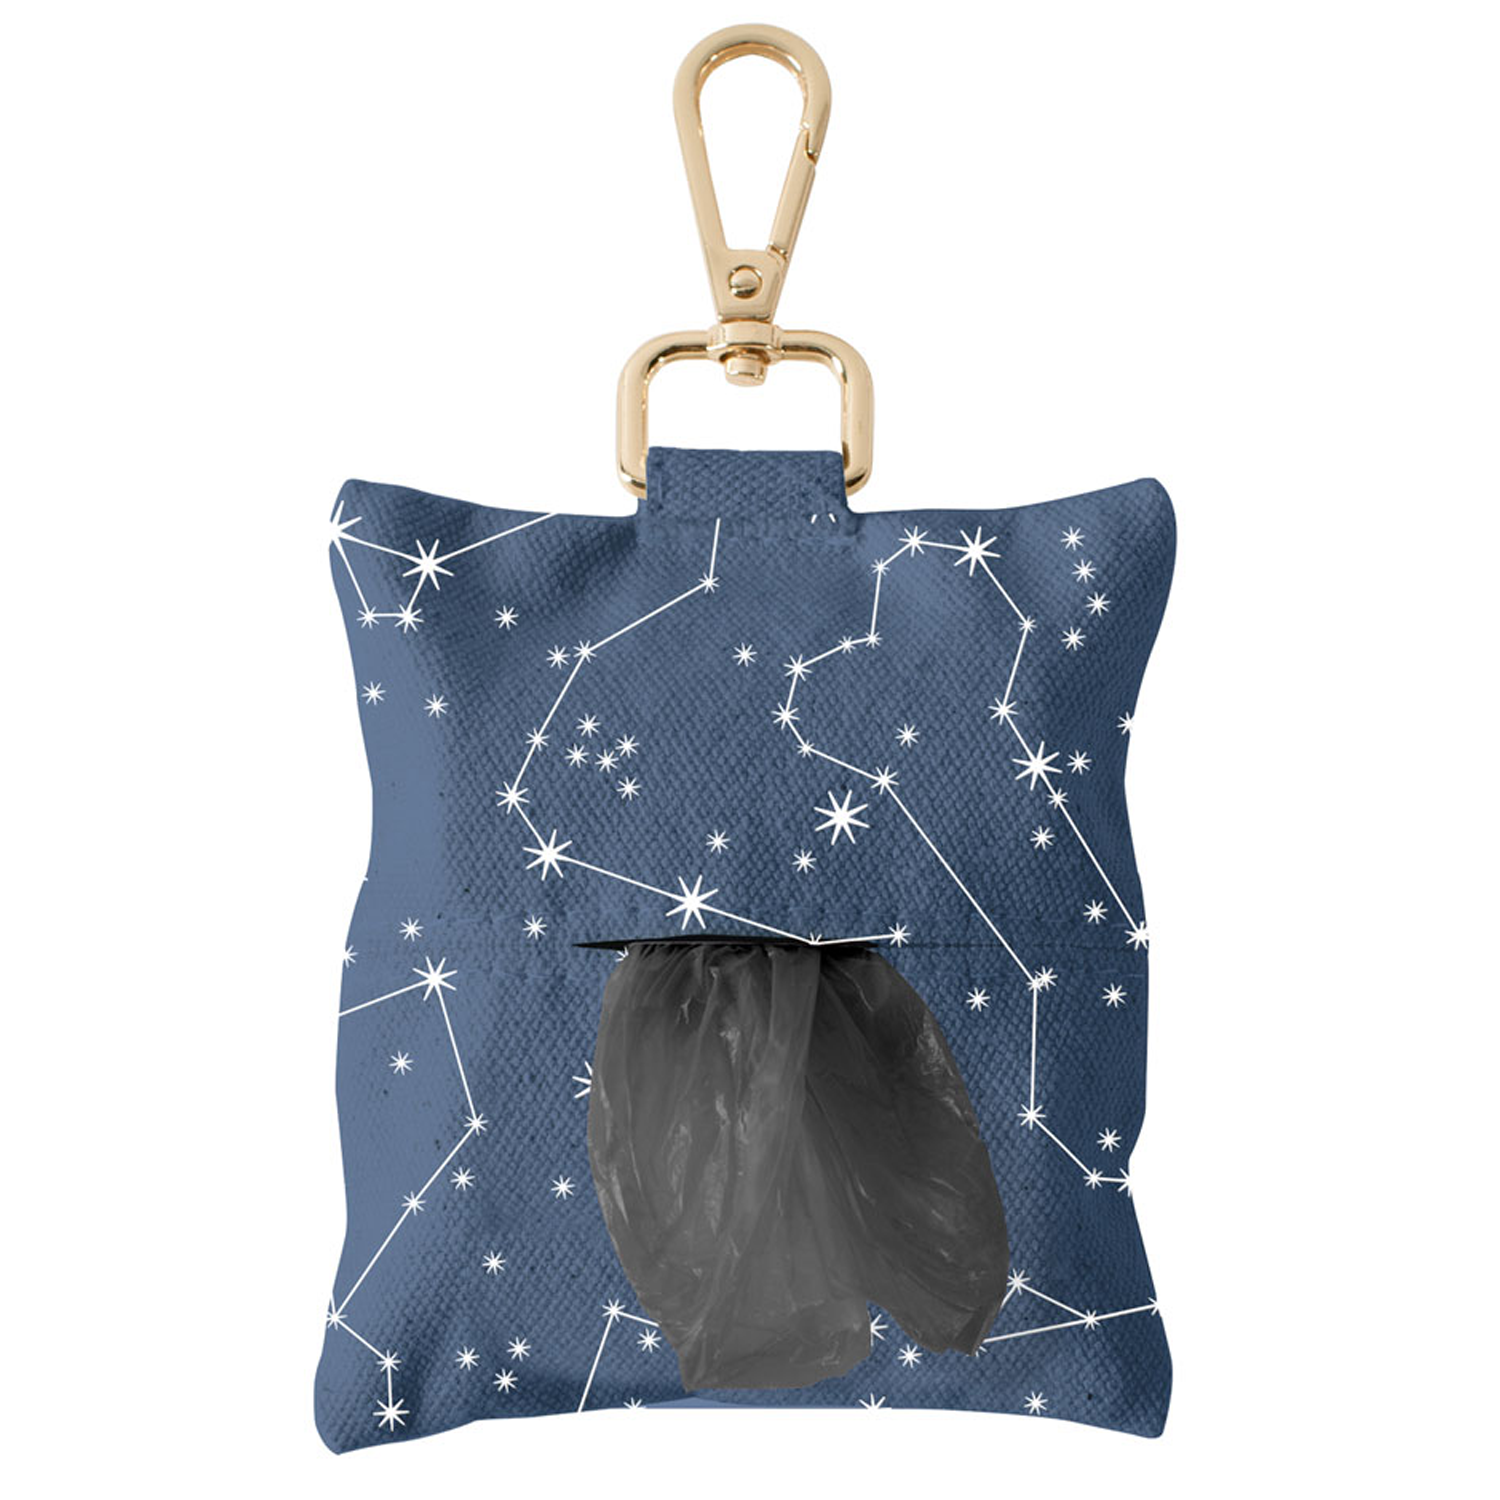 Celestial Canvas Poop Bag Dispenser